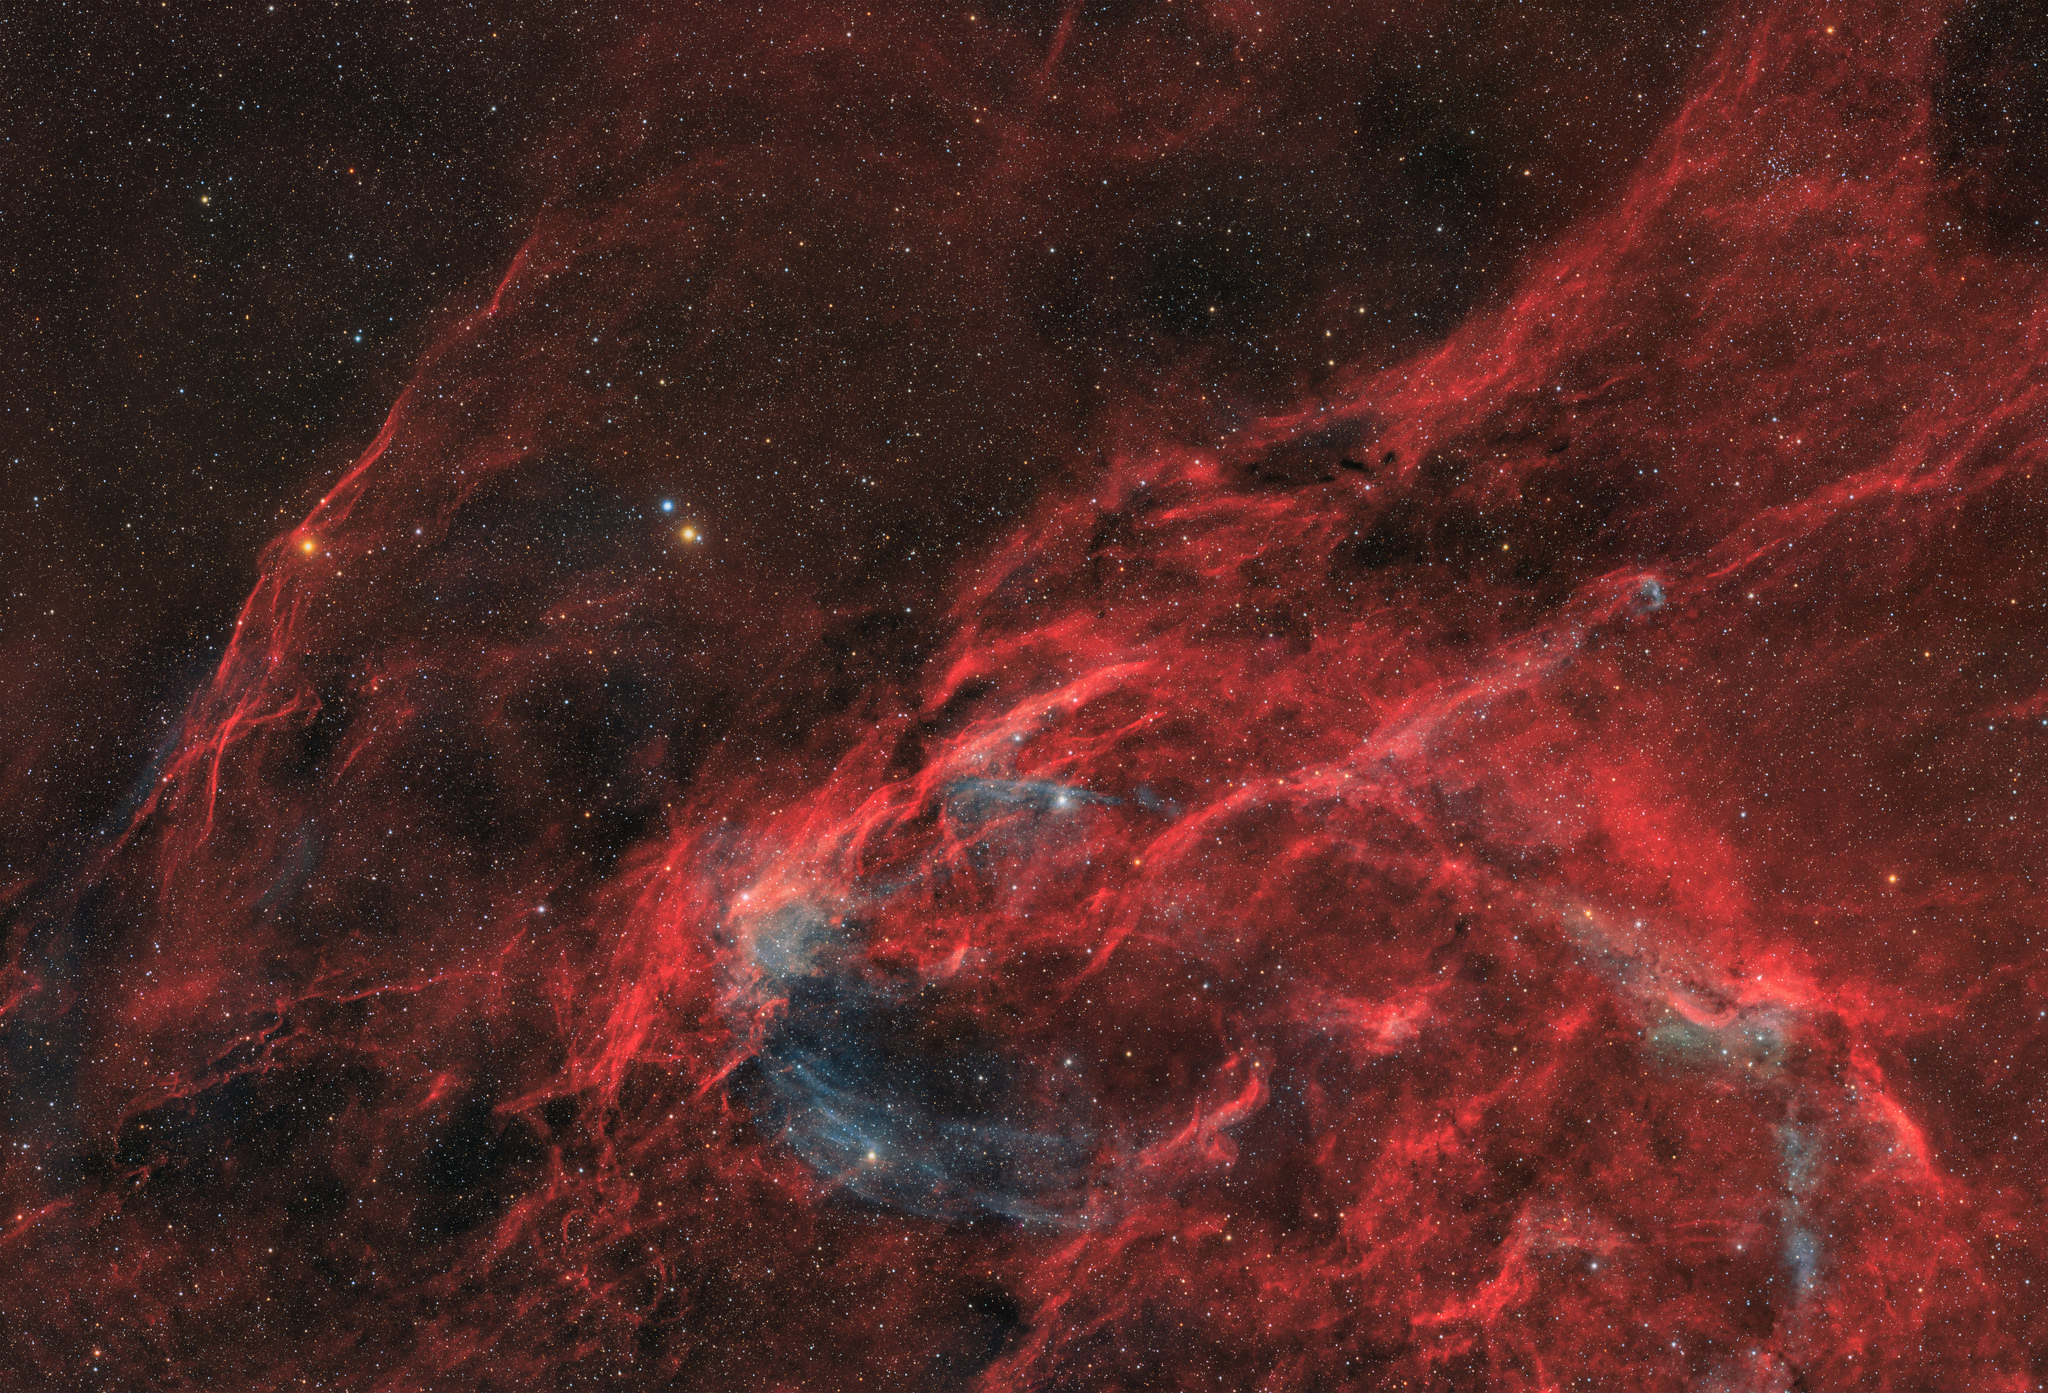 Northwestern Cygnus, 8 panel mosaic (HaOIIIRGB)   Image by   Nico Carver   This region of Cygnus west of Deneb is anchored by the bright and colorful stars 30 and 31 Cygni. There are many types of interesting and overlapping nebulae in this region including many HII regions catalogued by Dickel, Wendker, and Bieritz, as well as more recent discoveries such as the giant supernova remnant known as G 82.2+5.3 and the much smaller possible planetary nebula PN PM 1-320. This was my most challenging photo yet with more than 46 hours of integration, and the time-consuming process of creating a seamless 8 panel mosaic.